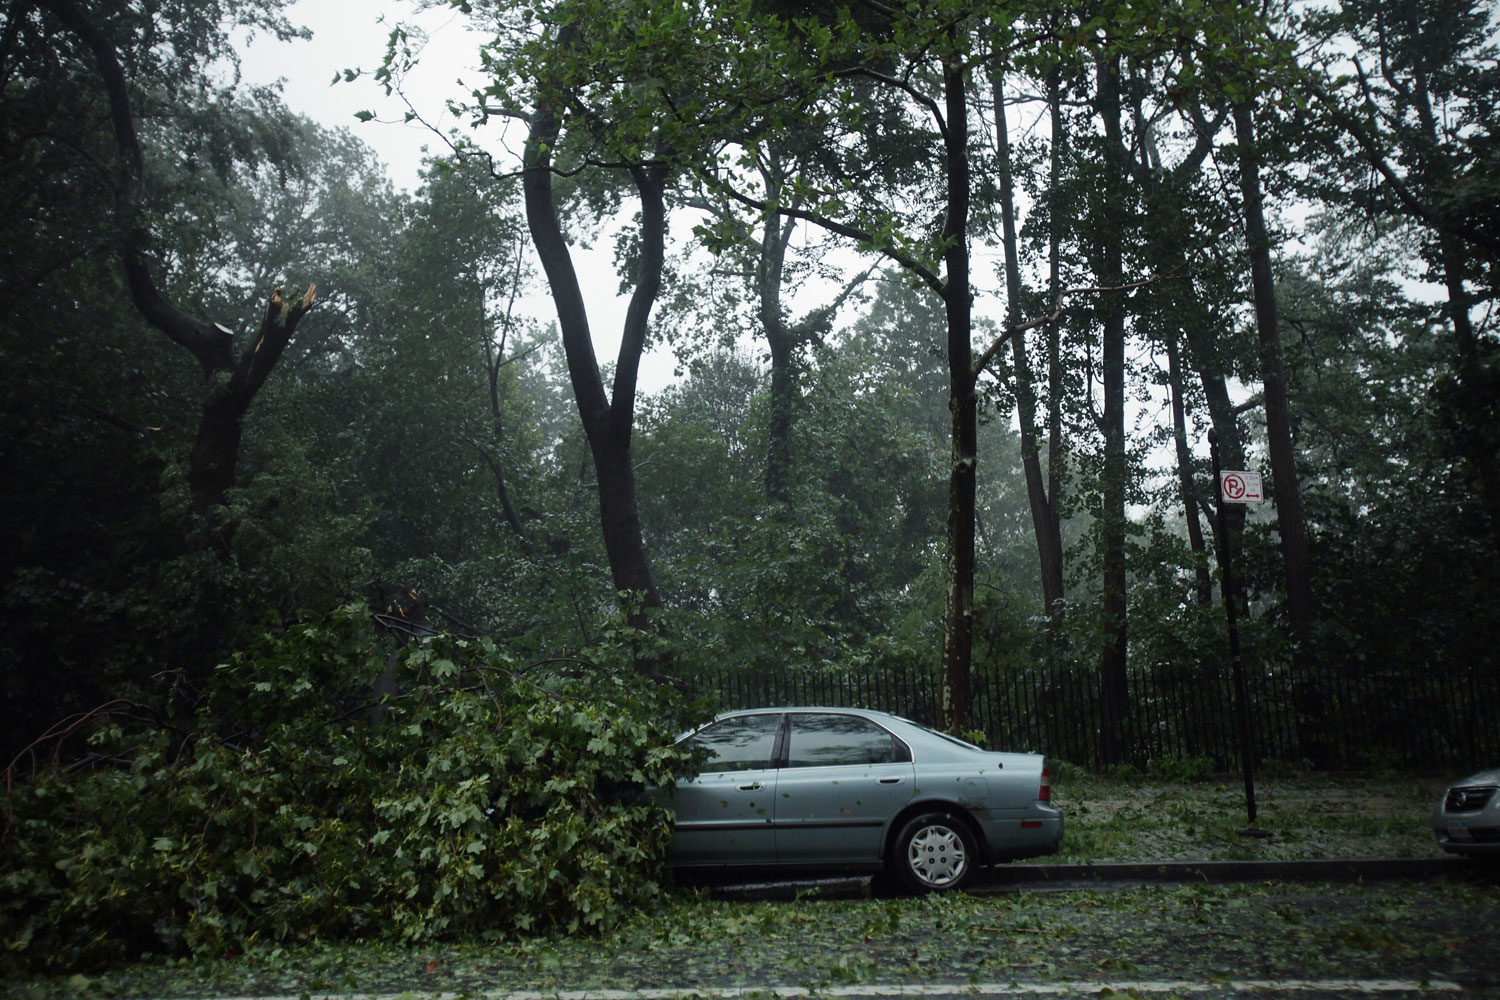 August 28, 2011, Brooklyn, NY. Downed trees lie on the street during heavy rain and winds from Hurricane Irene in New York City. While Hurricane Irene has now been downgraded to a tropical storm, it has knocked out power to more than 3 million people and is attributed to 10 deaths as it travels up the Eastern seaboard.